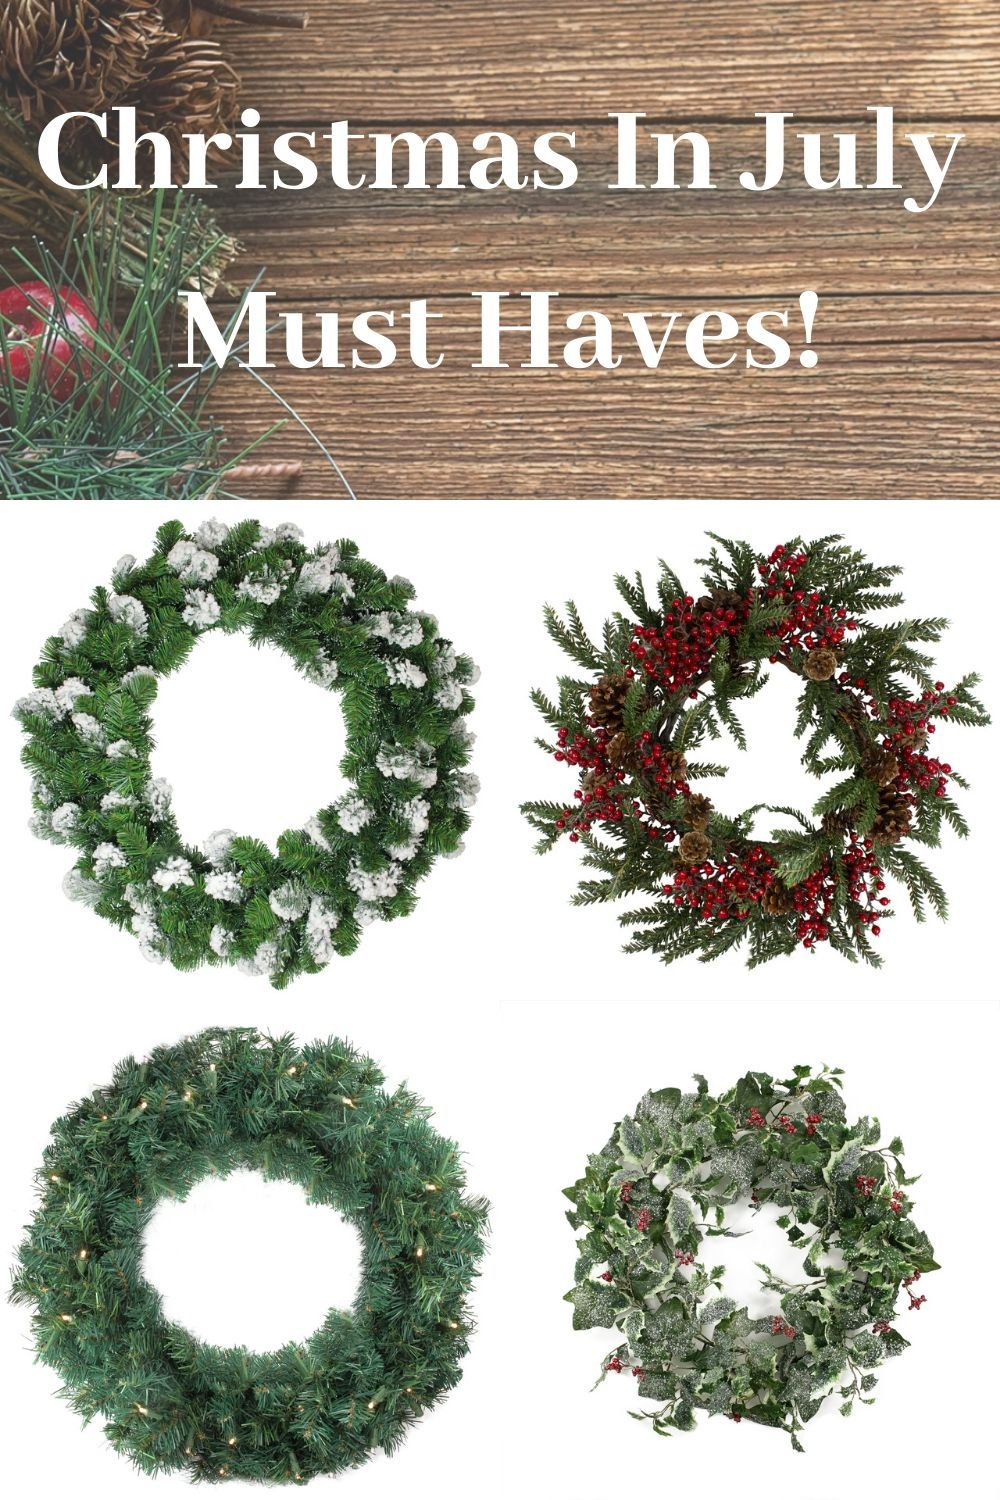 Must Have Christmas Wreaths For Christmas In July In 2020 Christmas In July Christmas Wreaths Wreaths